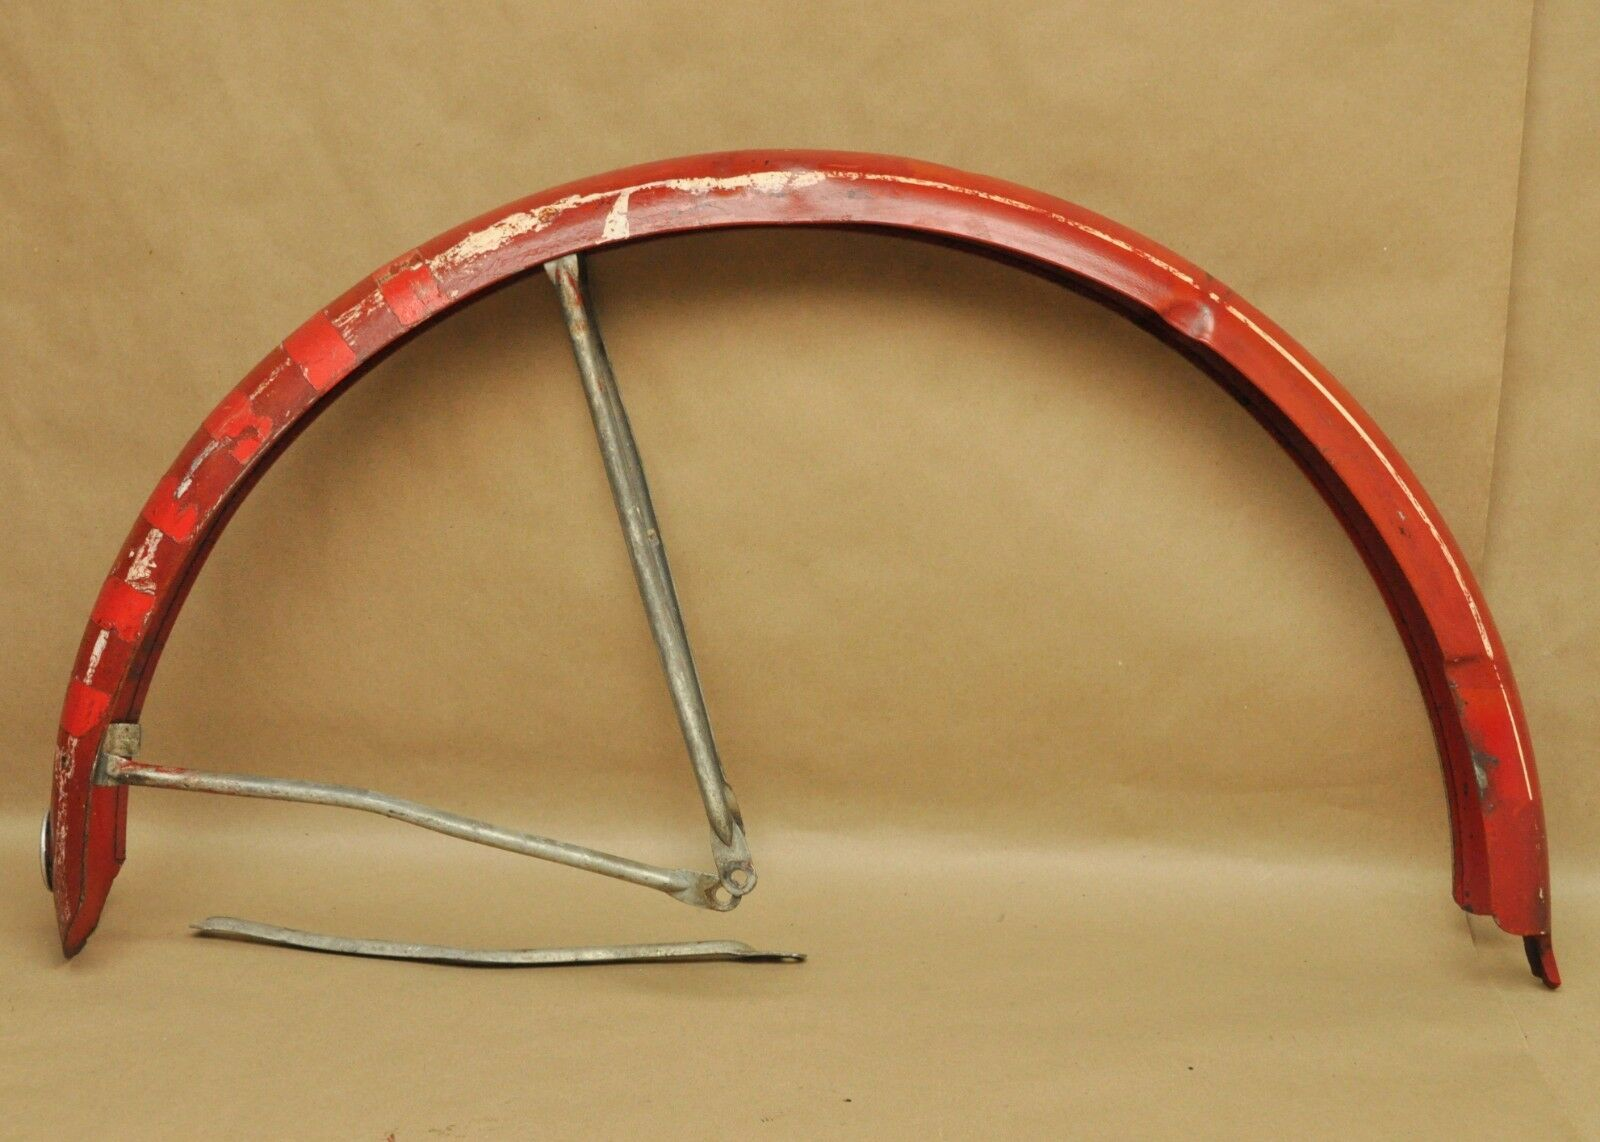 Vintage 1958 Schwinn Spitfire Bicycle Rear Fender Red